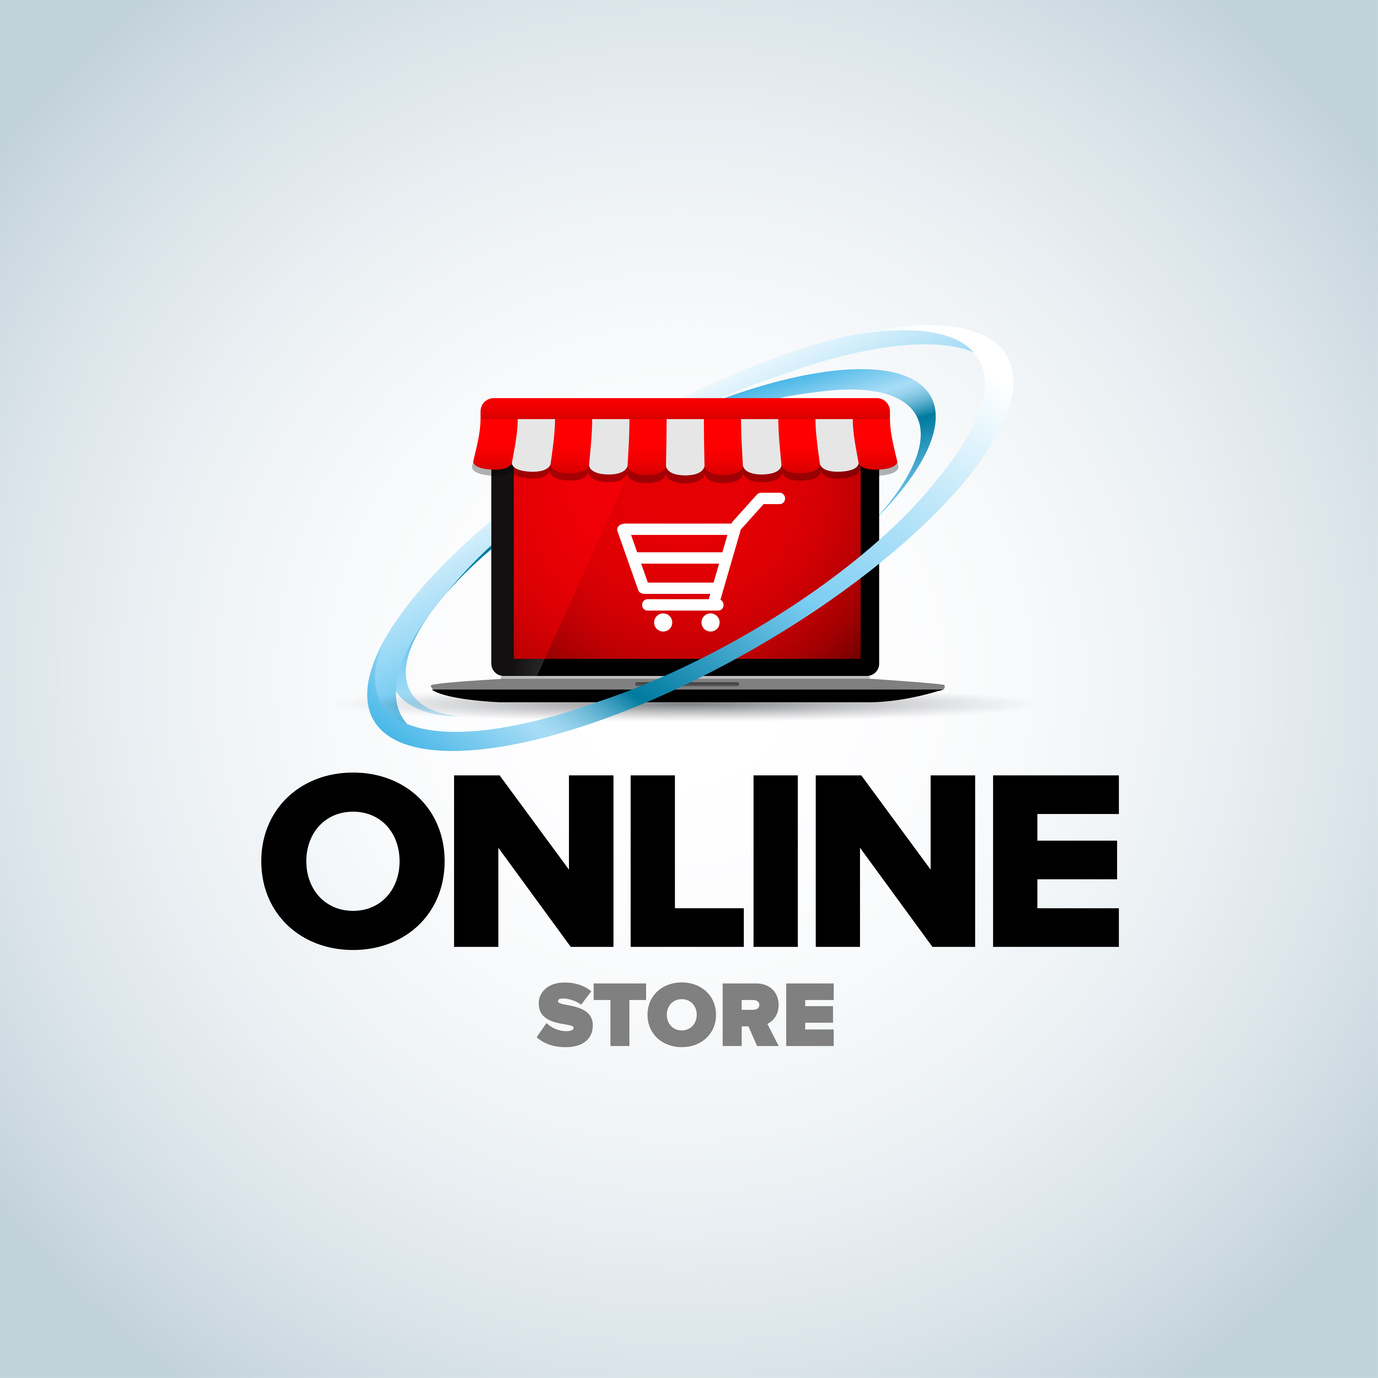 How to launch your new online marketing logo online logo for How to make logo online